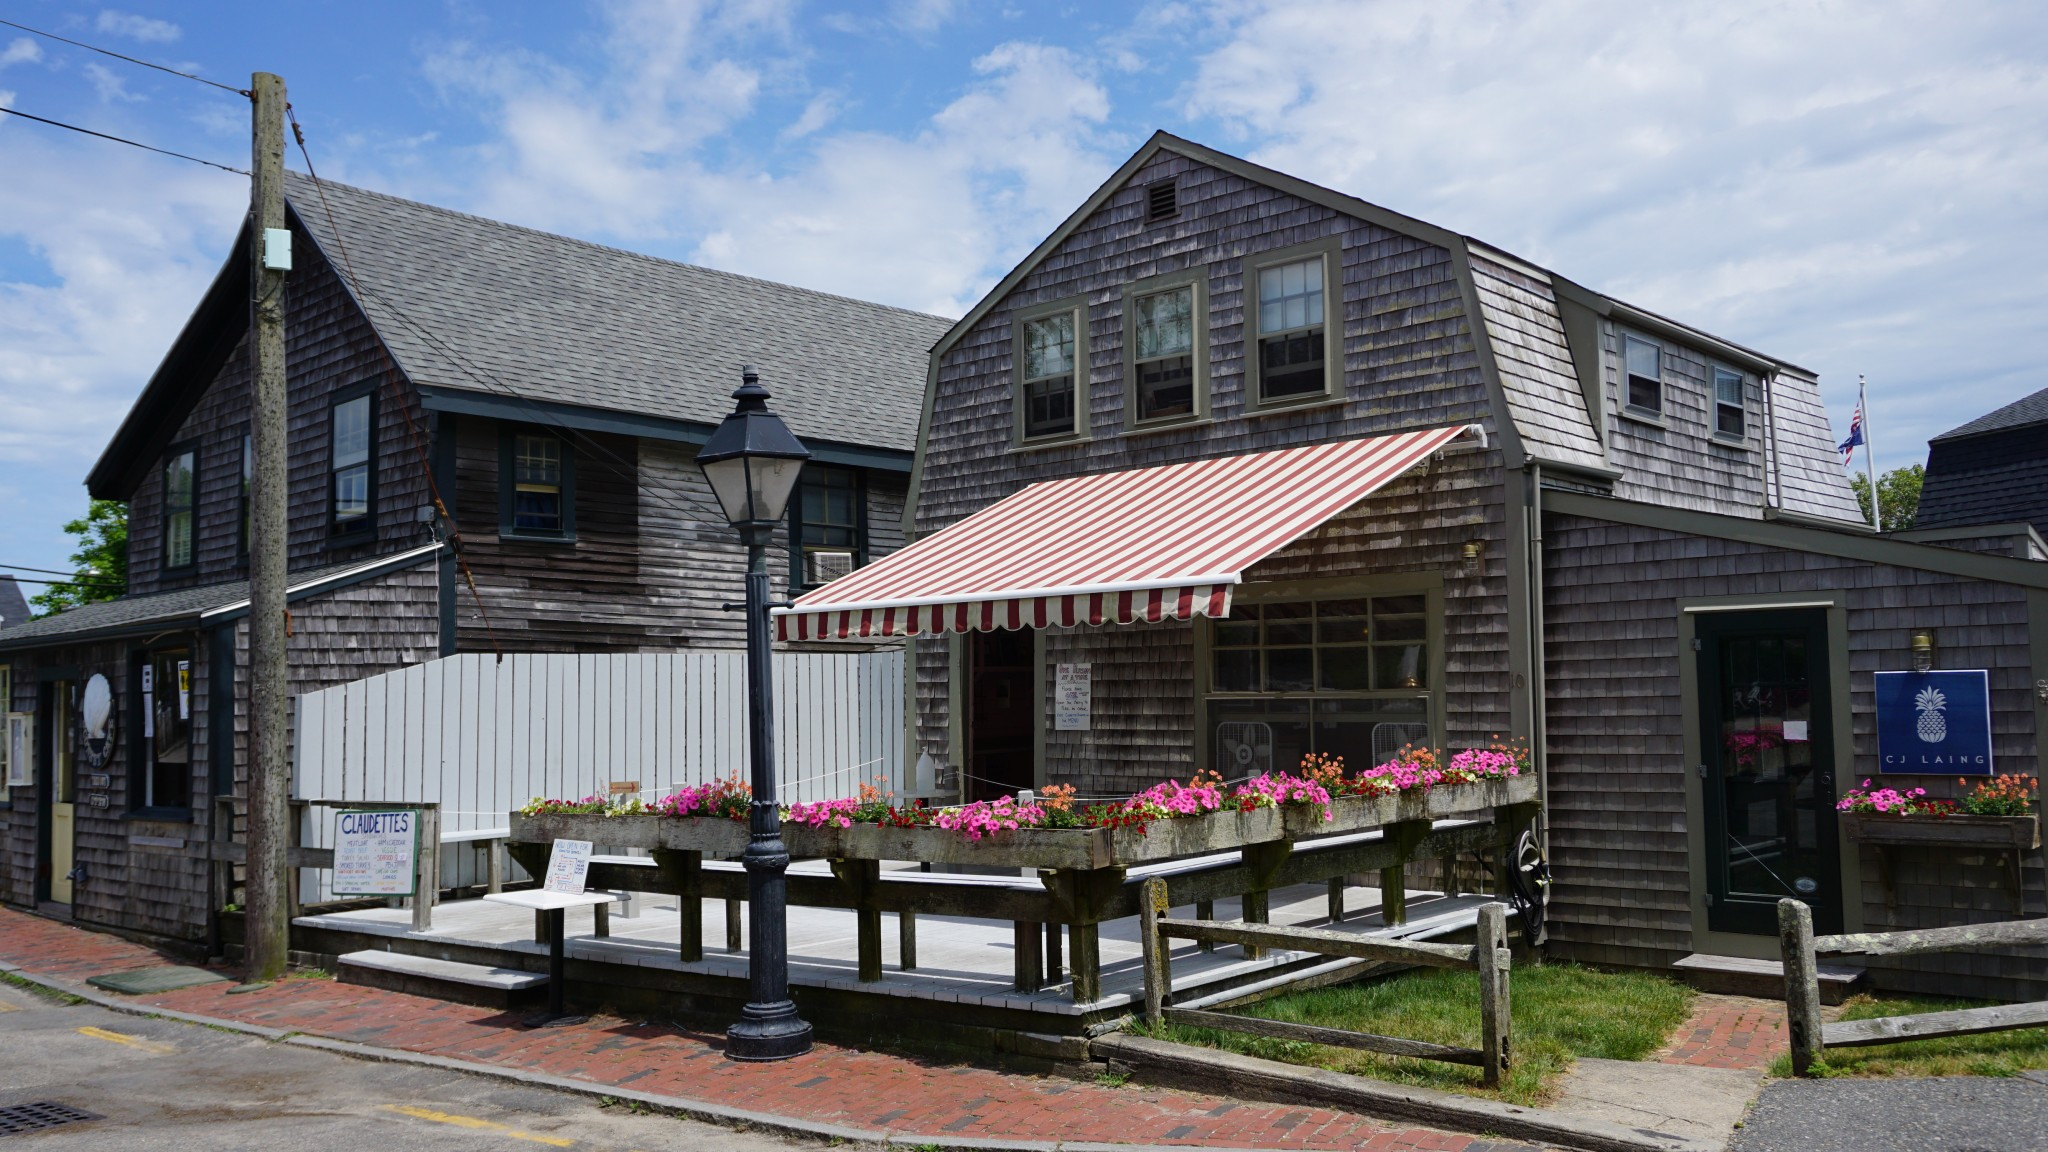 sconset, siasconset, nantucket, the-alyst.com